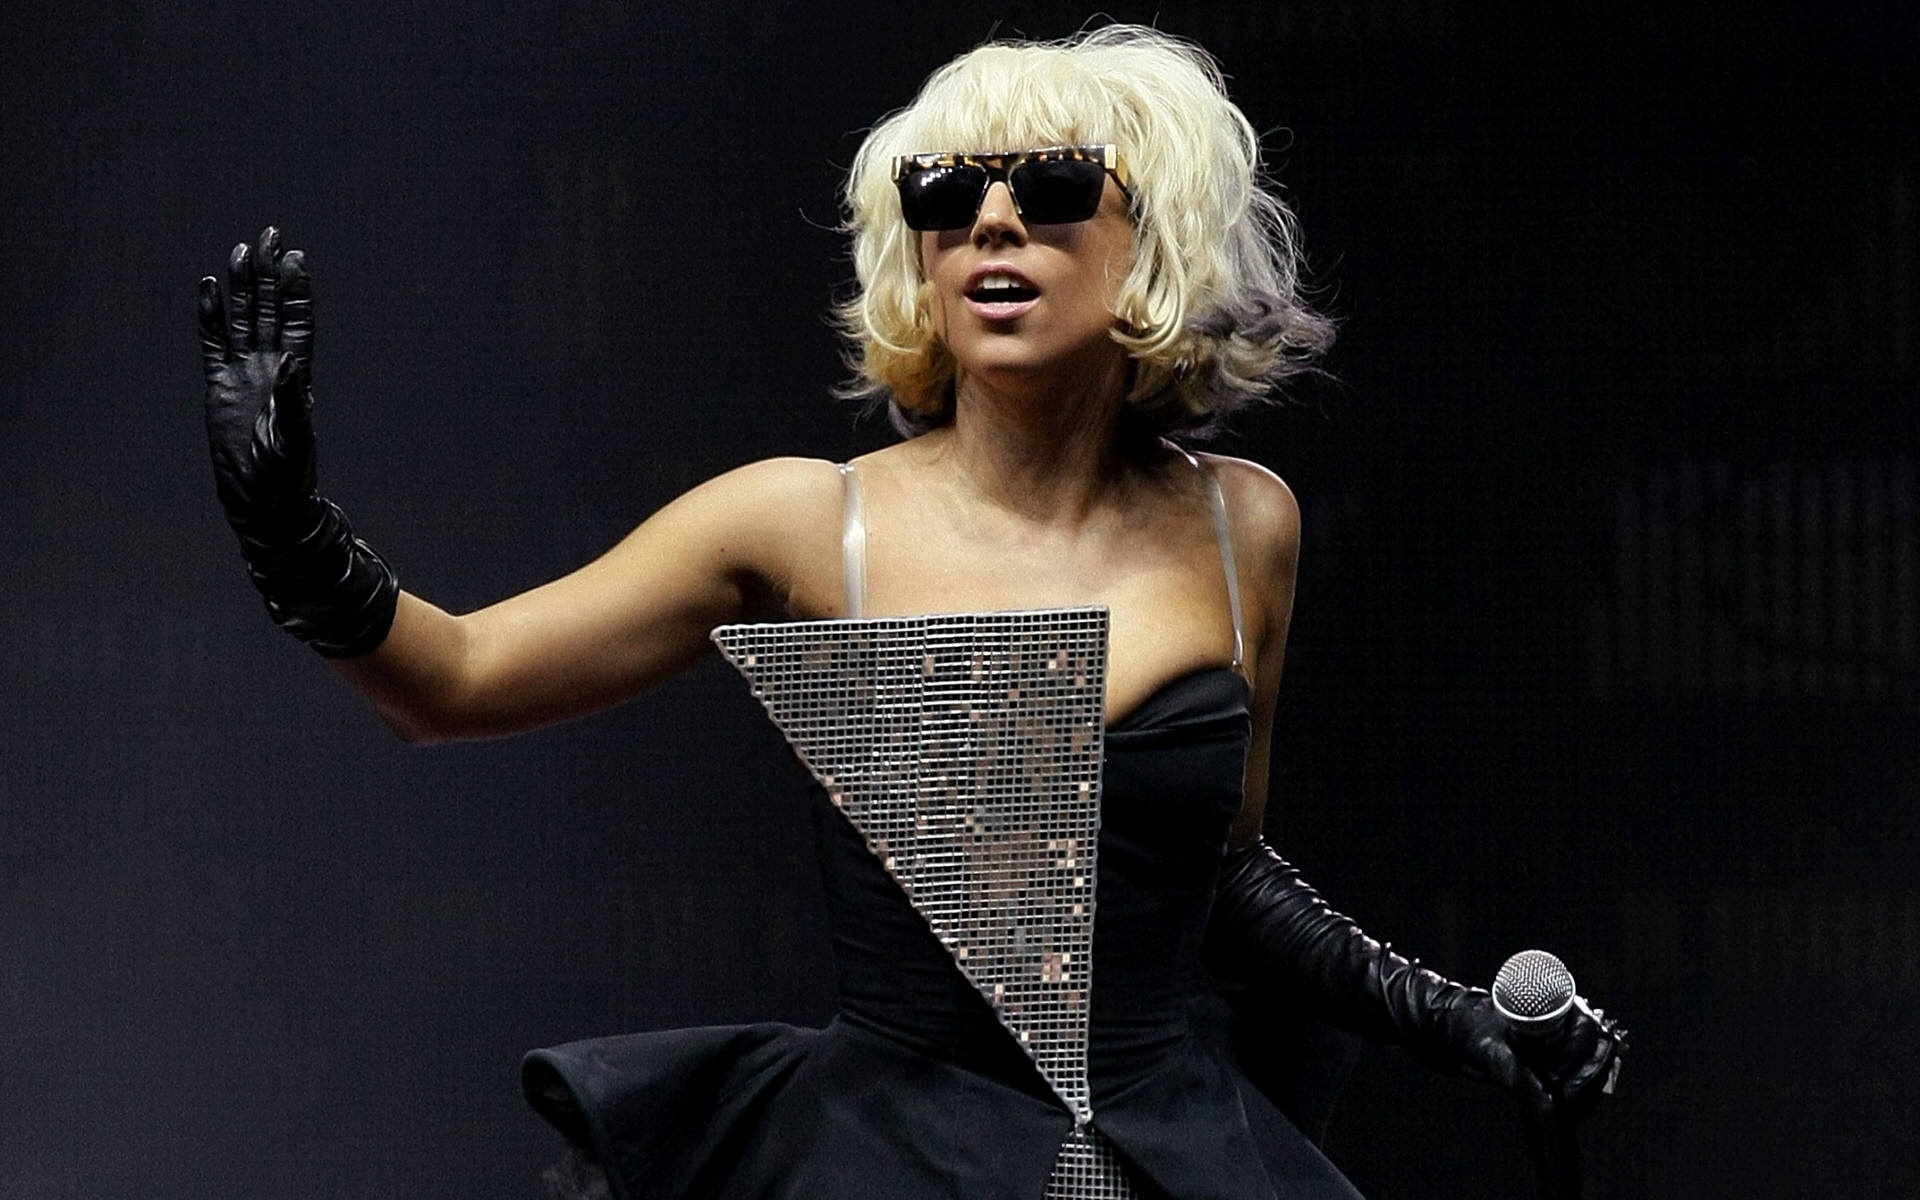 lady gaga hd wallpapers pictures images